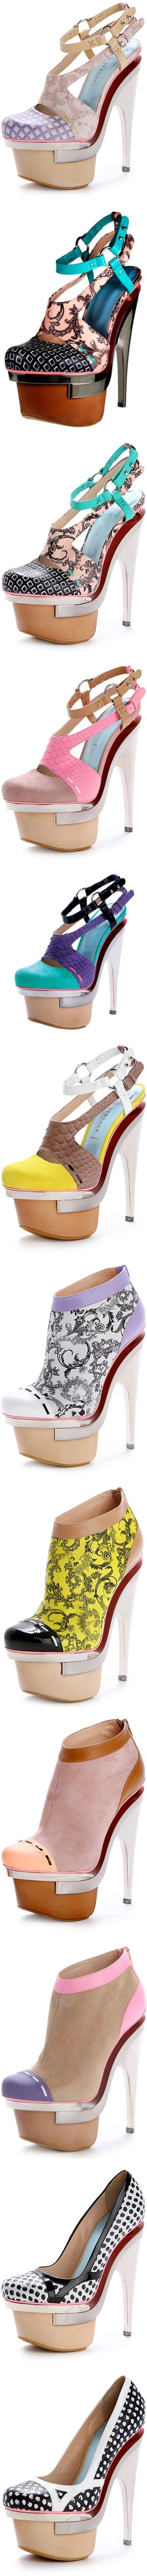 """""""Versace shoes"""" by aniaf ❤ liked on Polyvore"""